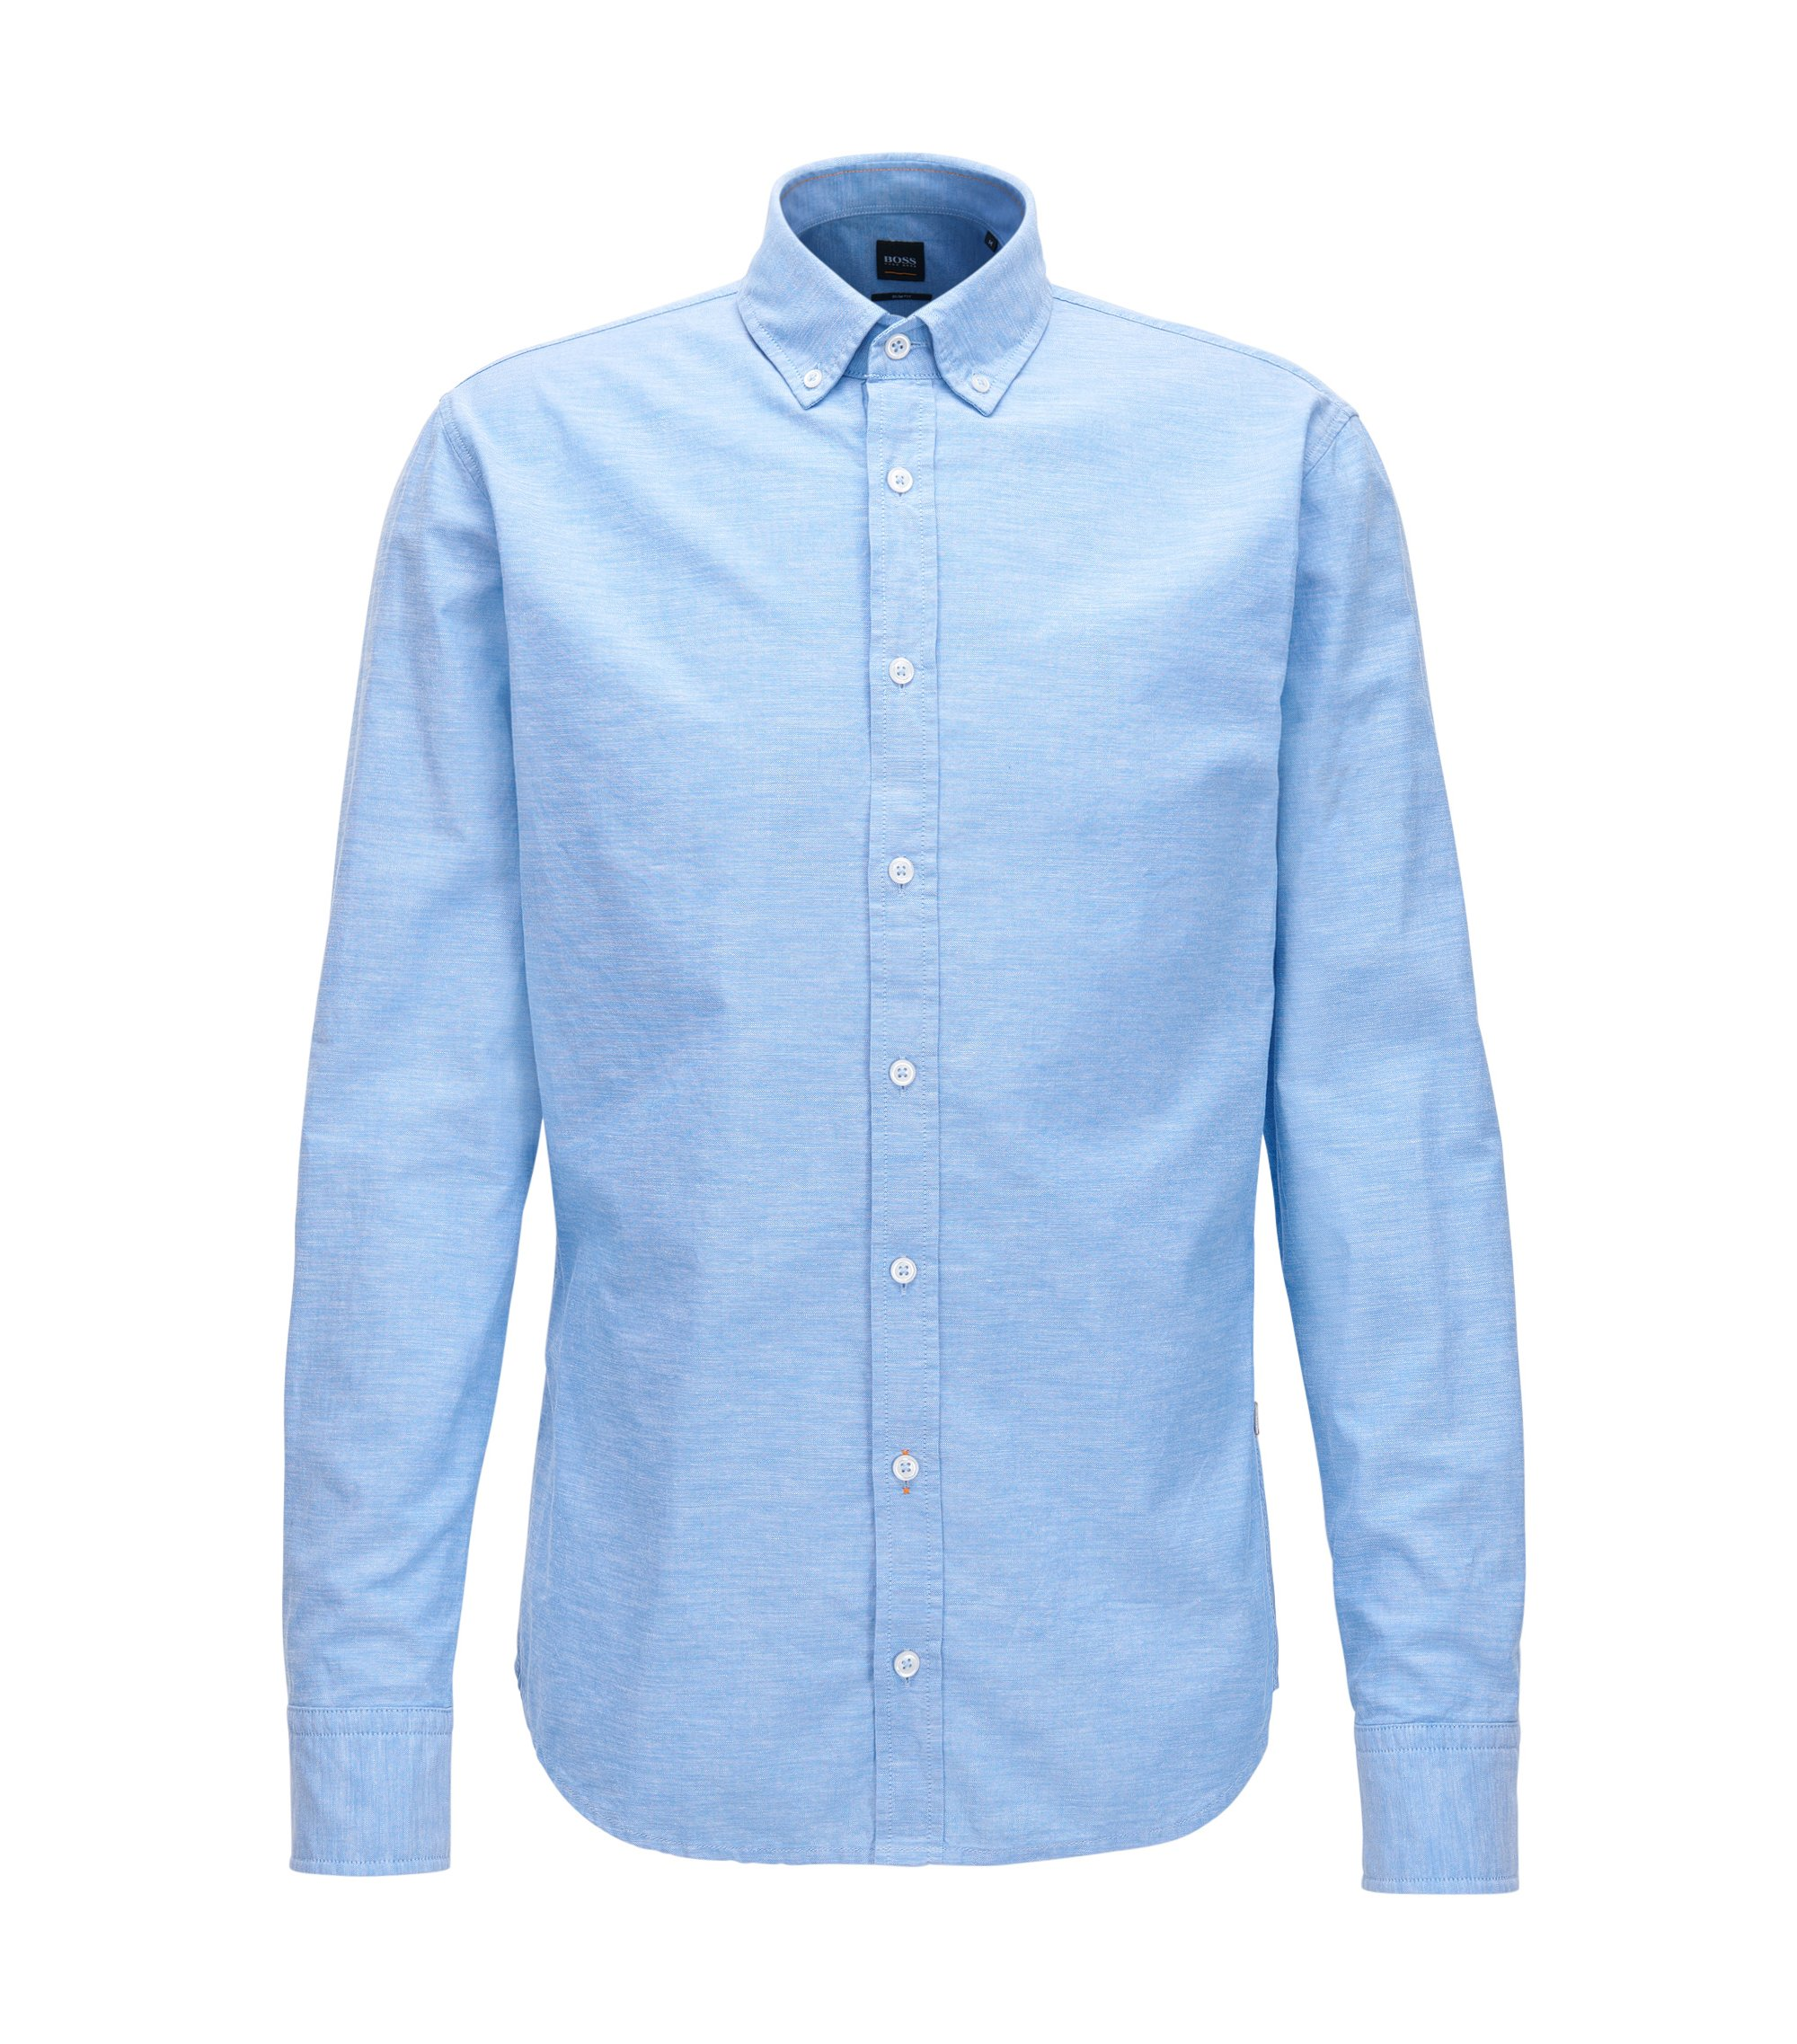 Camicia stile oxford slim fit in cotone manopesca, Celeste